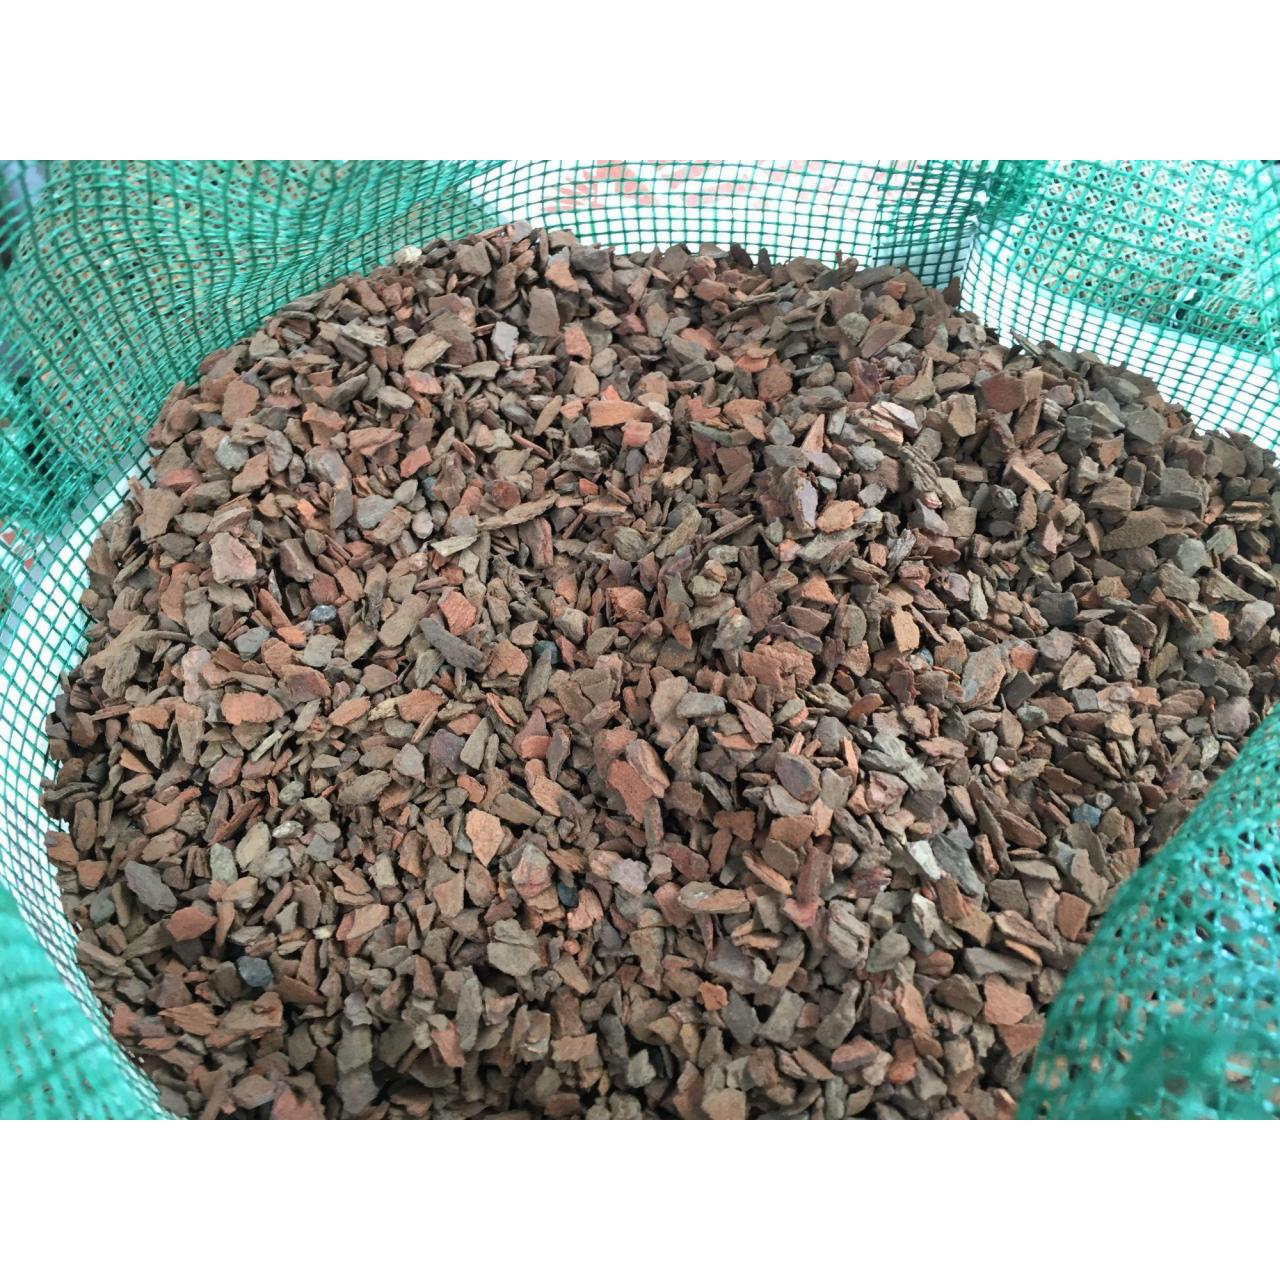 Quality No2 Kiwi Orchid Bark for sale